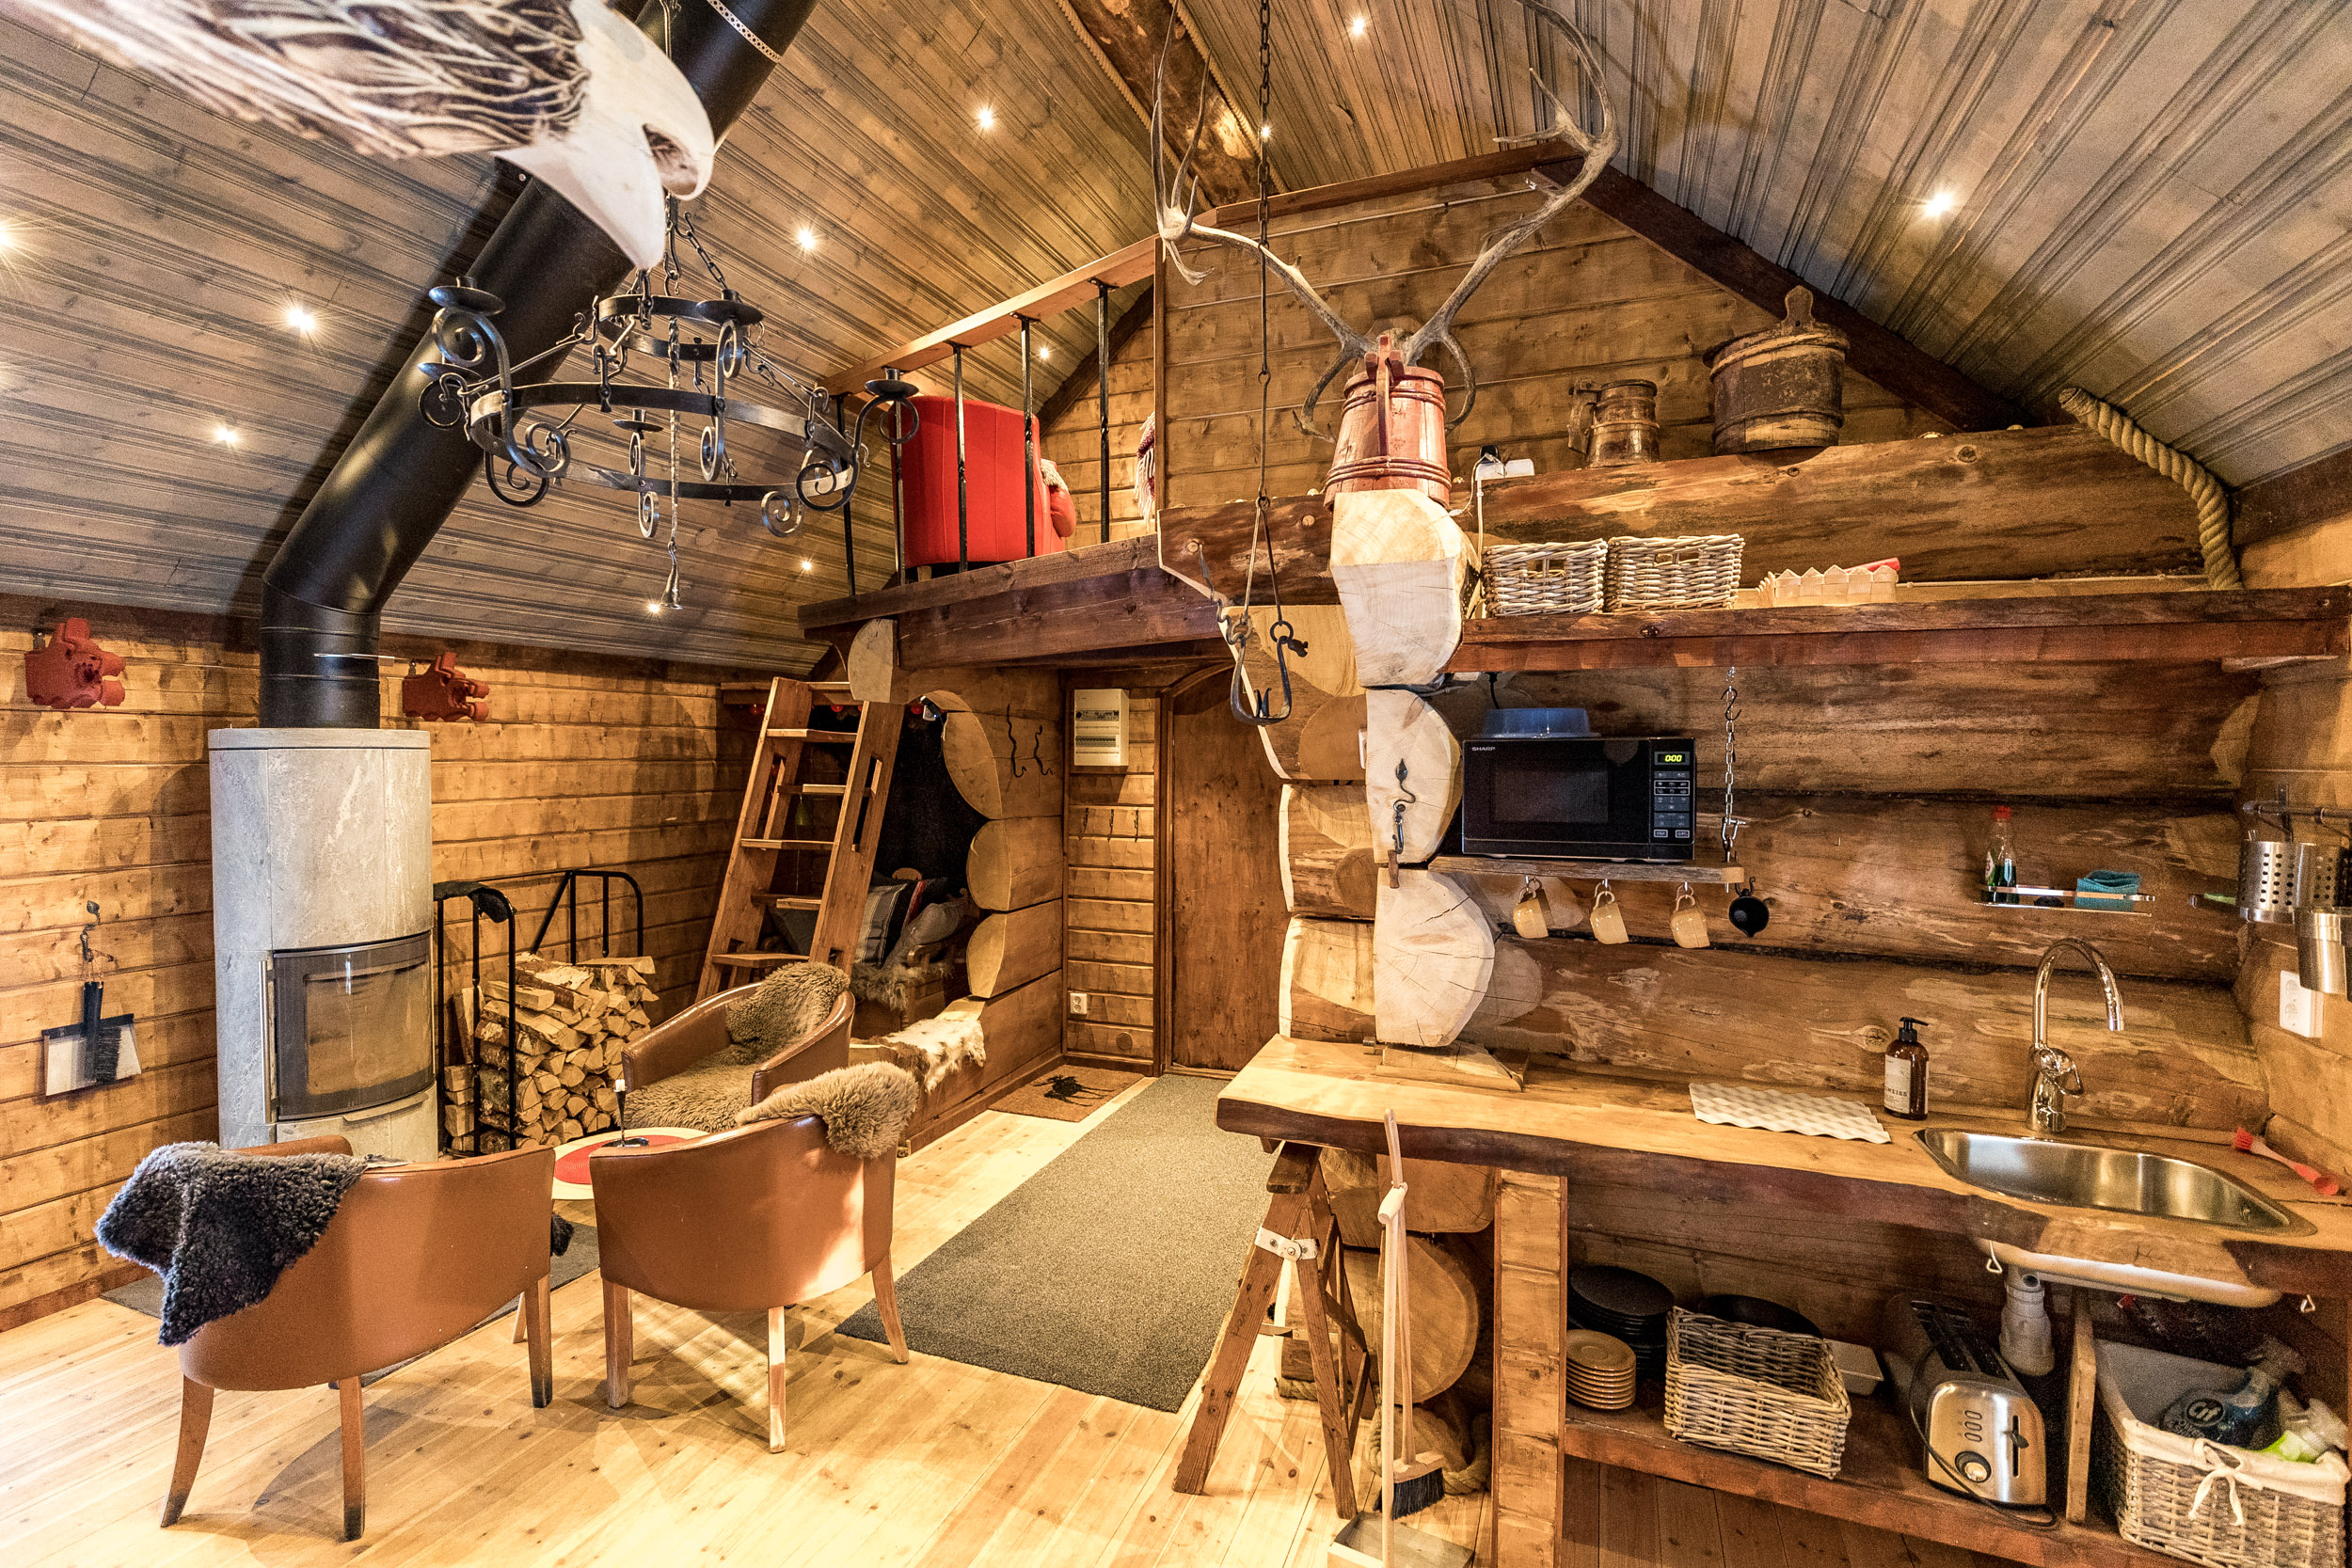 Lapland_Guesthouse-Viking-Cabin-Lapland-Guesthouse